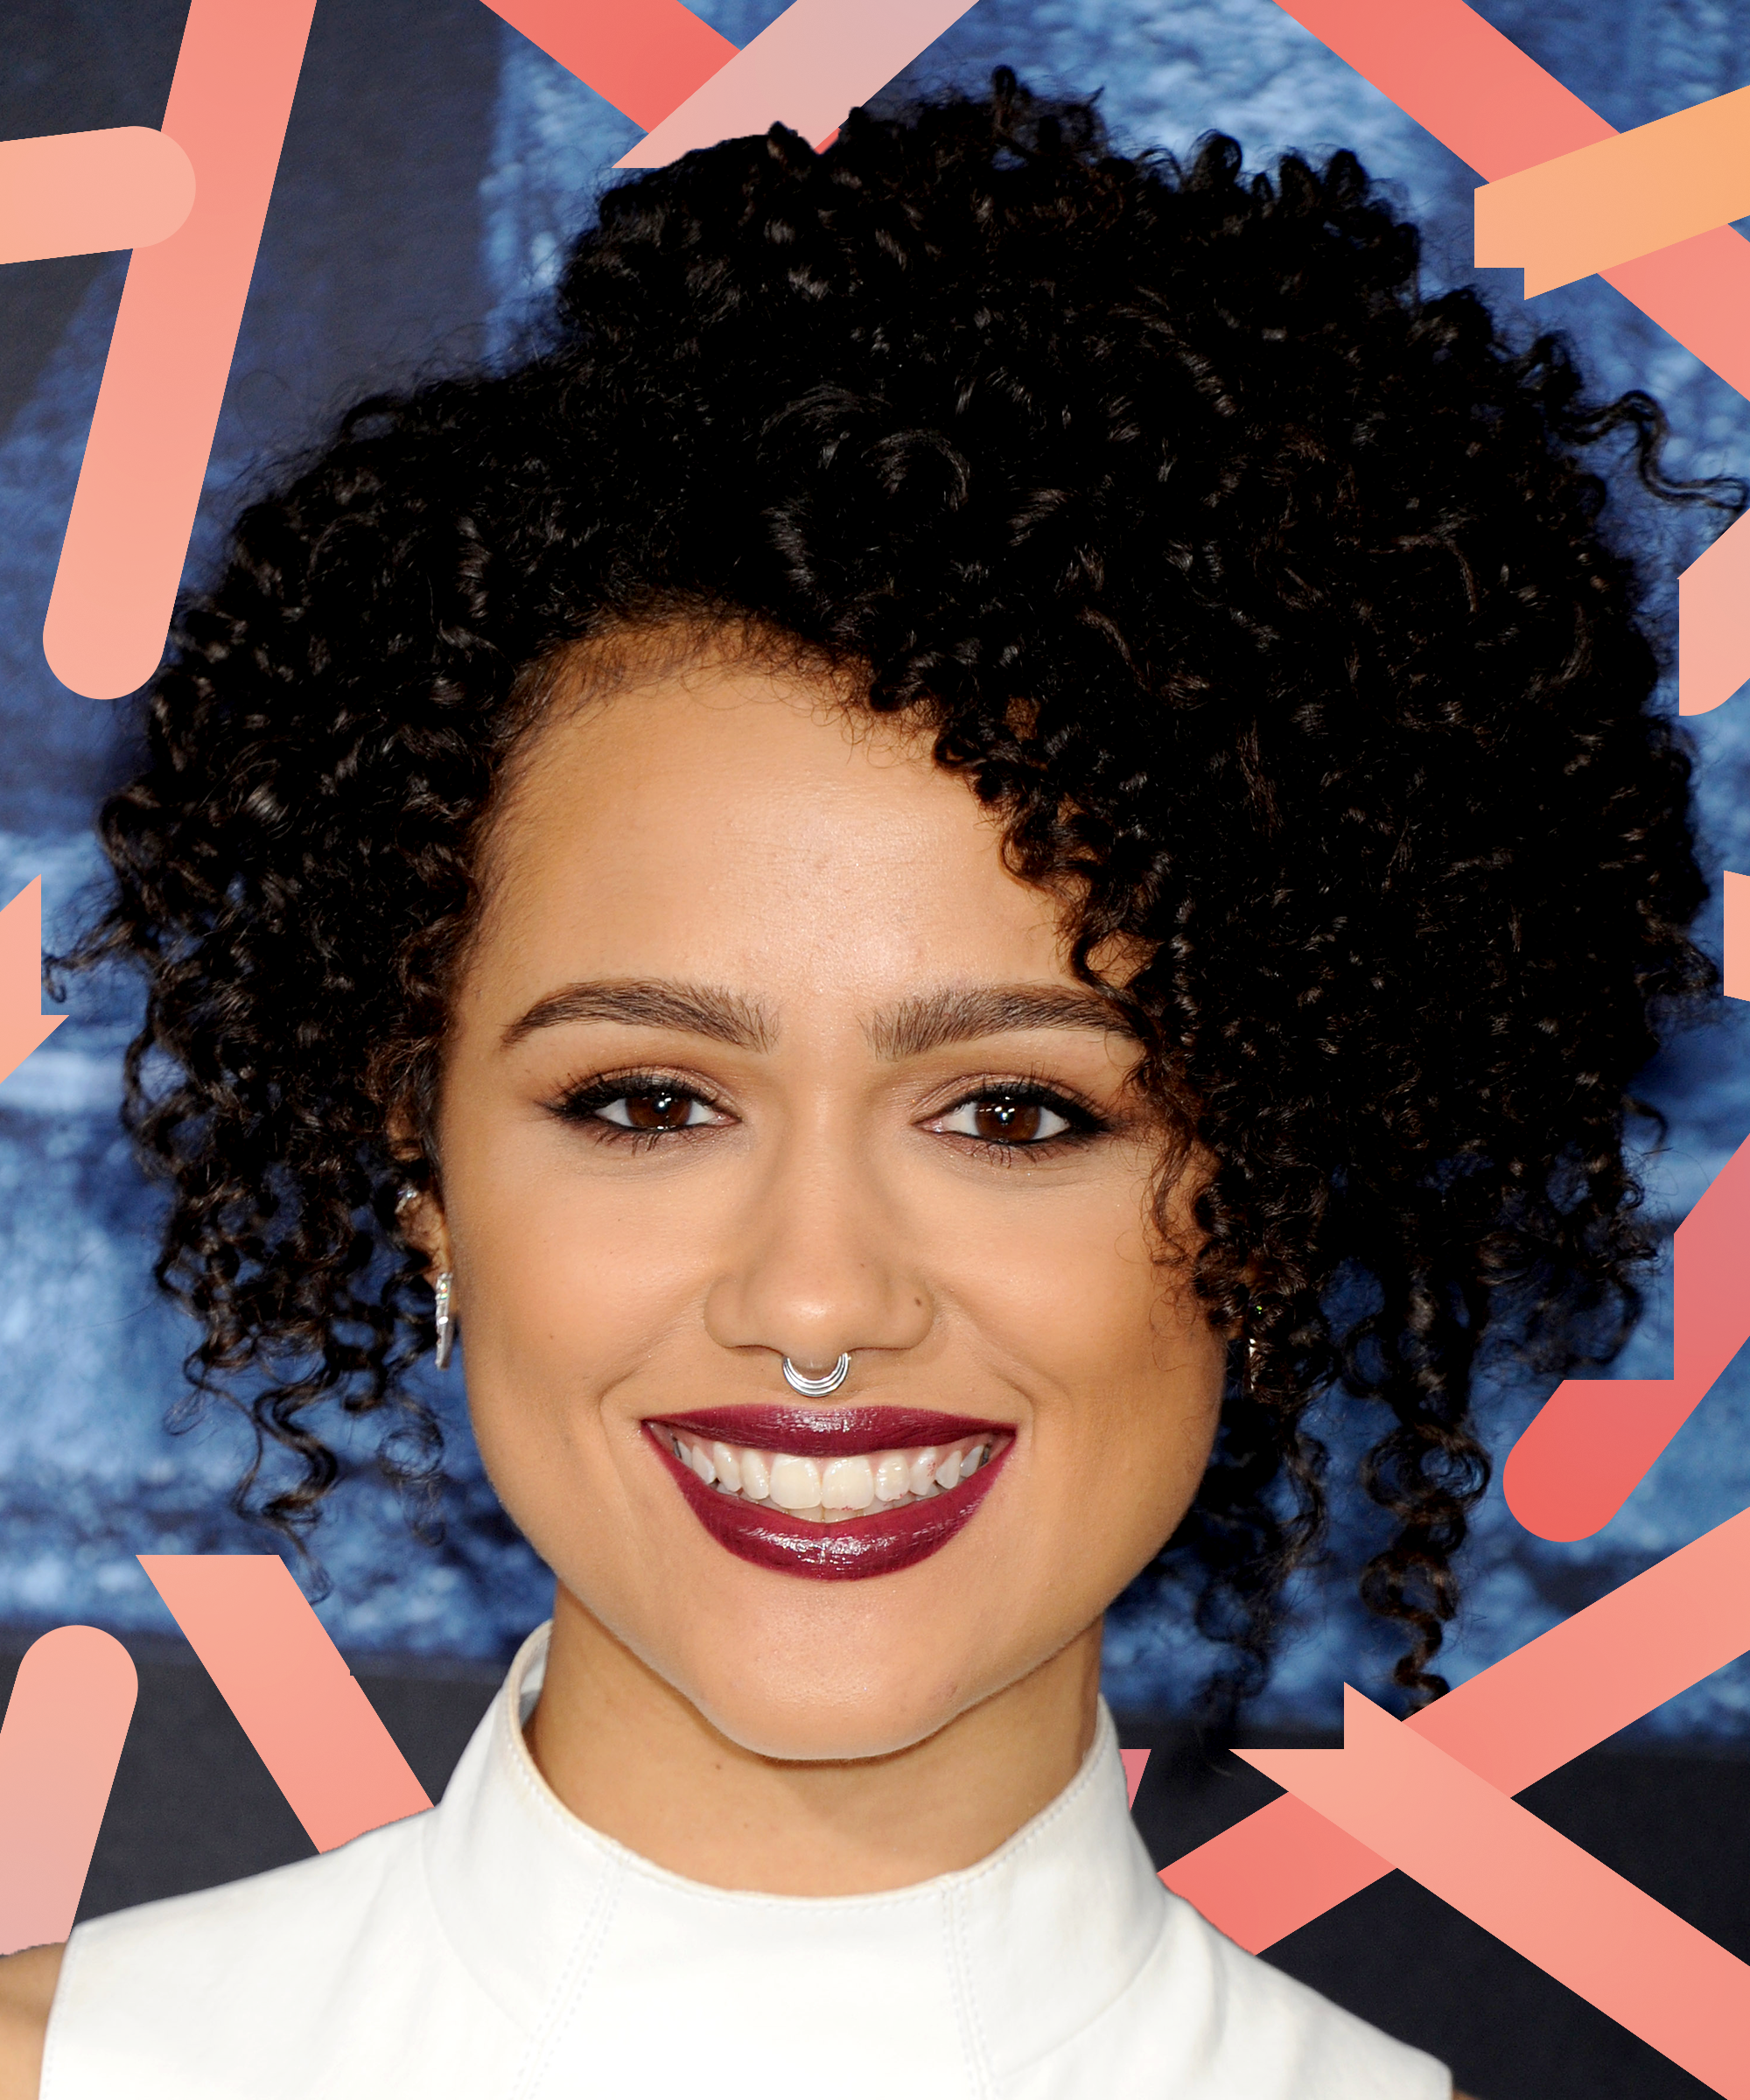 Nathalie Emmanuel Fast And Furious 8 Missandei Actress